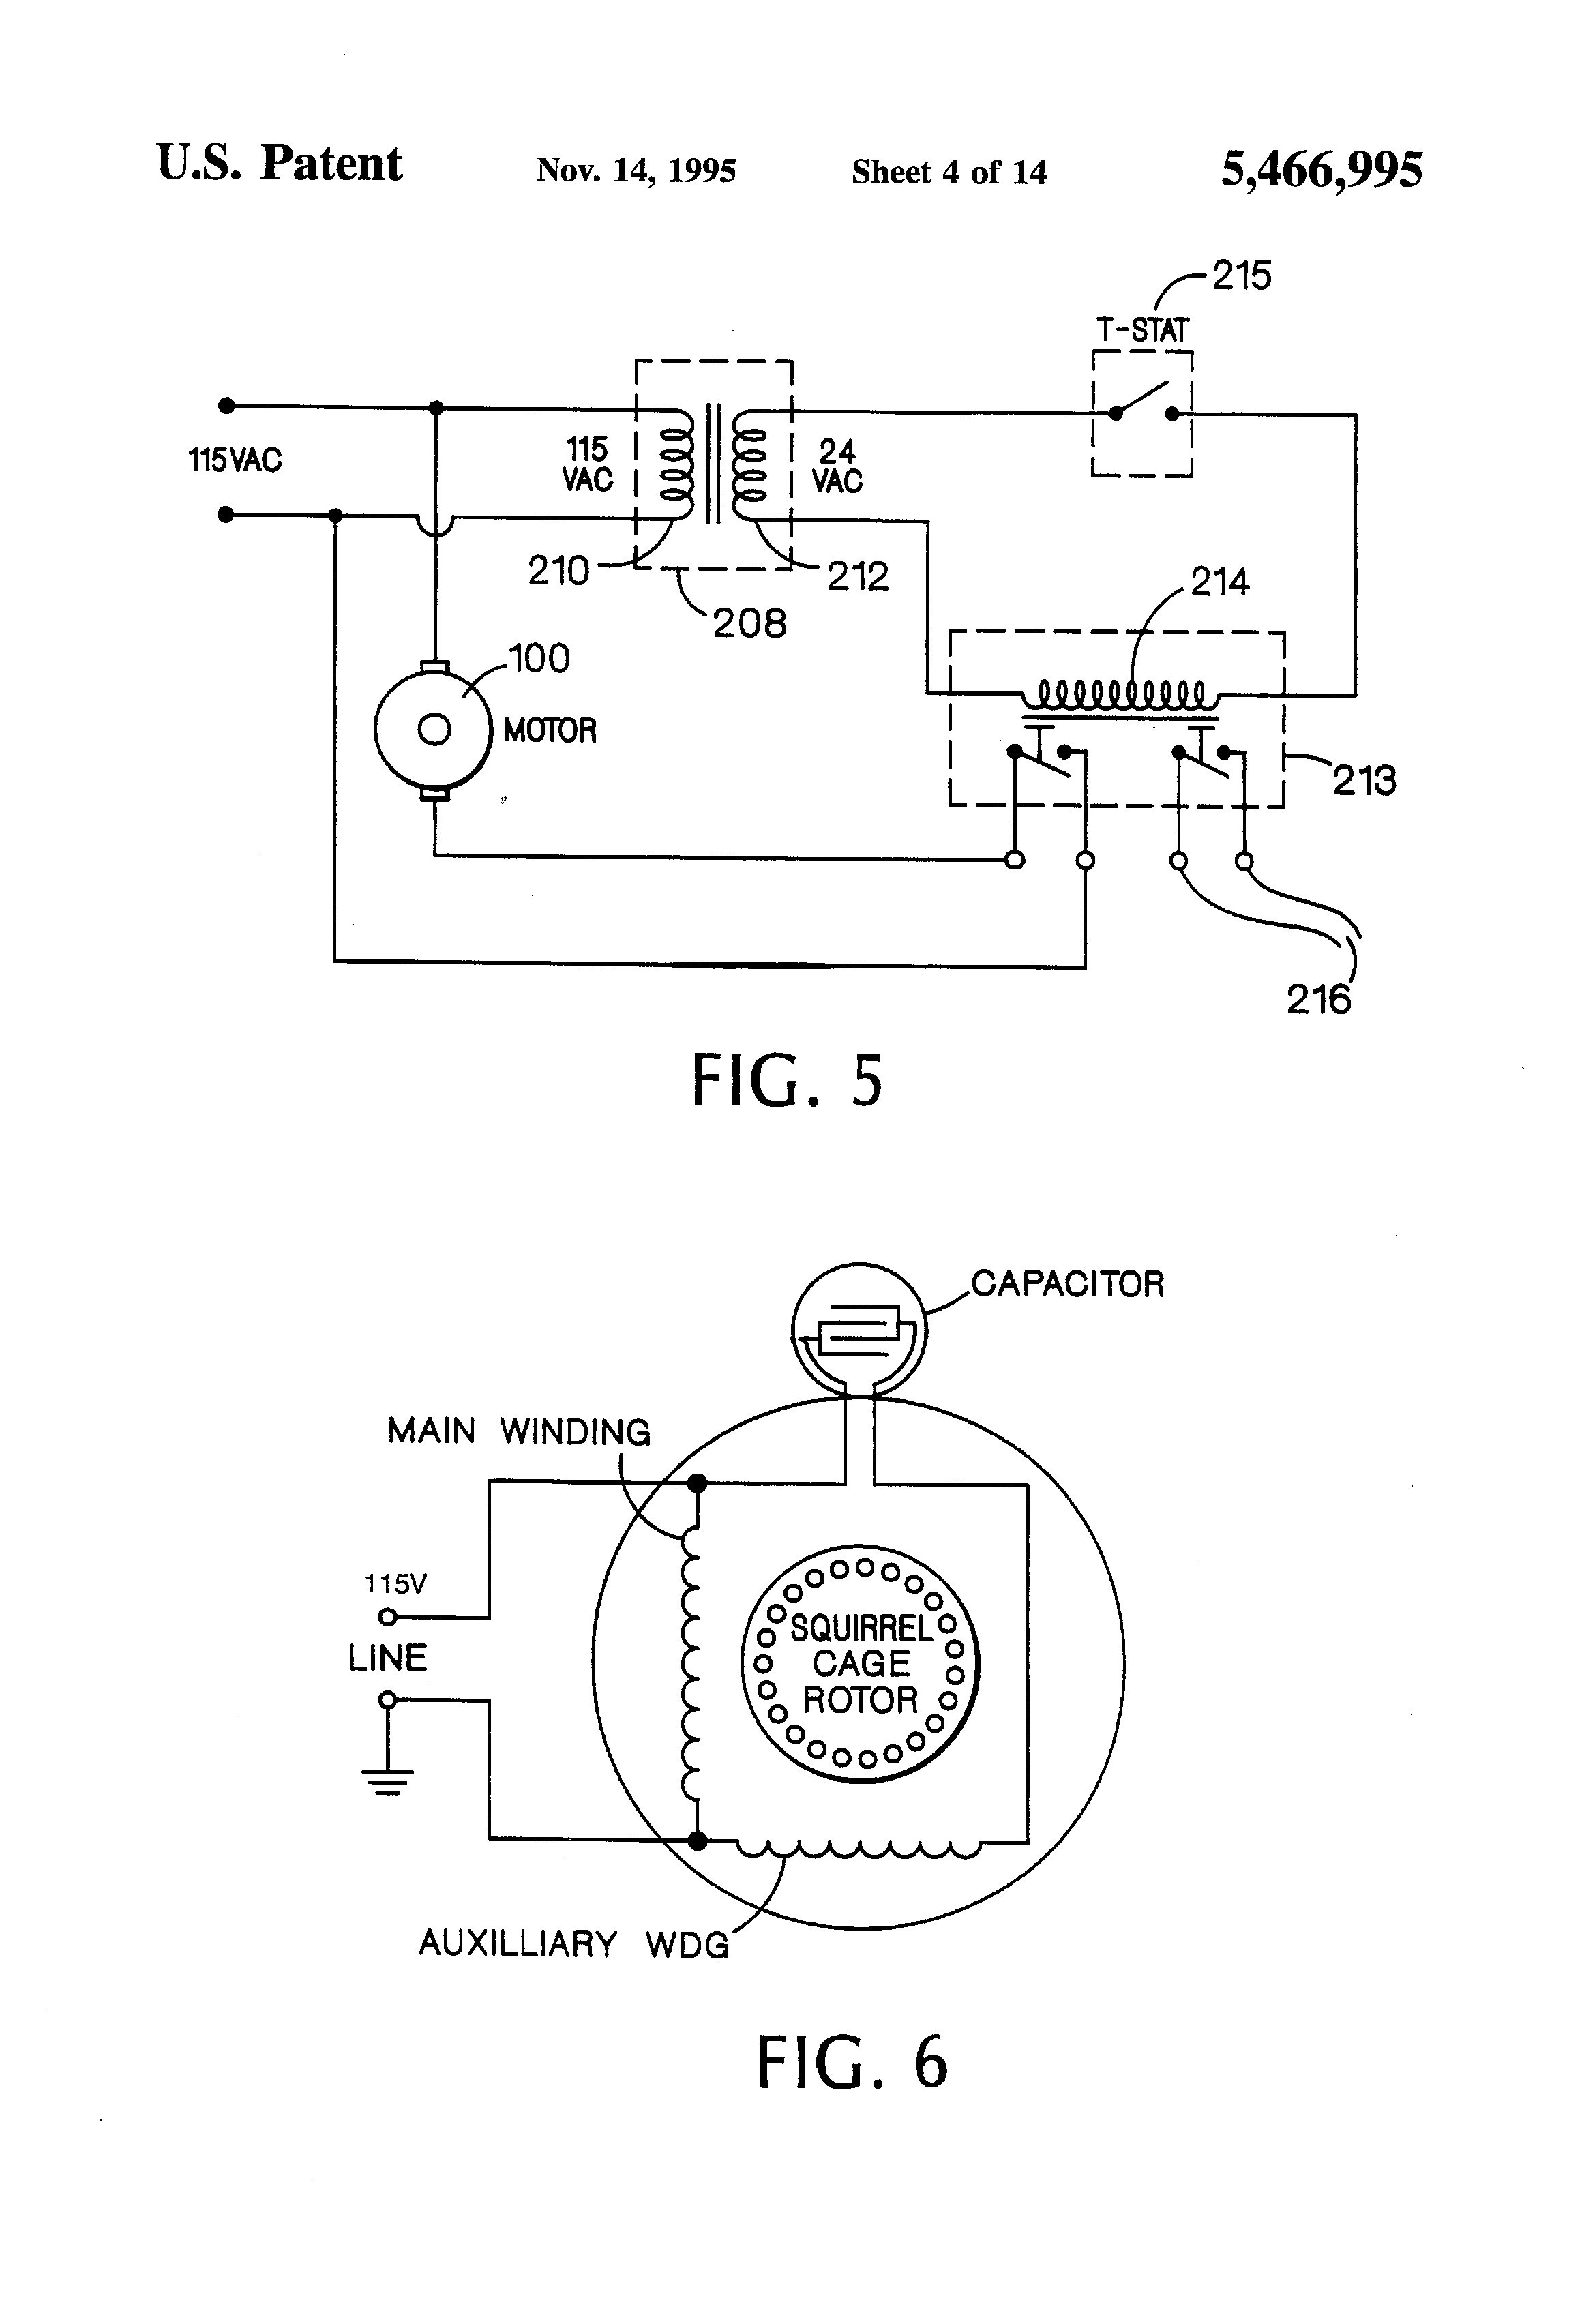 Taco Wiring Drawing | Manual E-Books - Wiring Diagram Sr502 Navien Boiler Nest